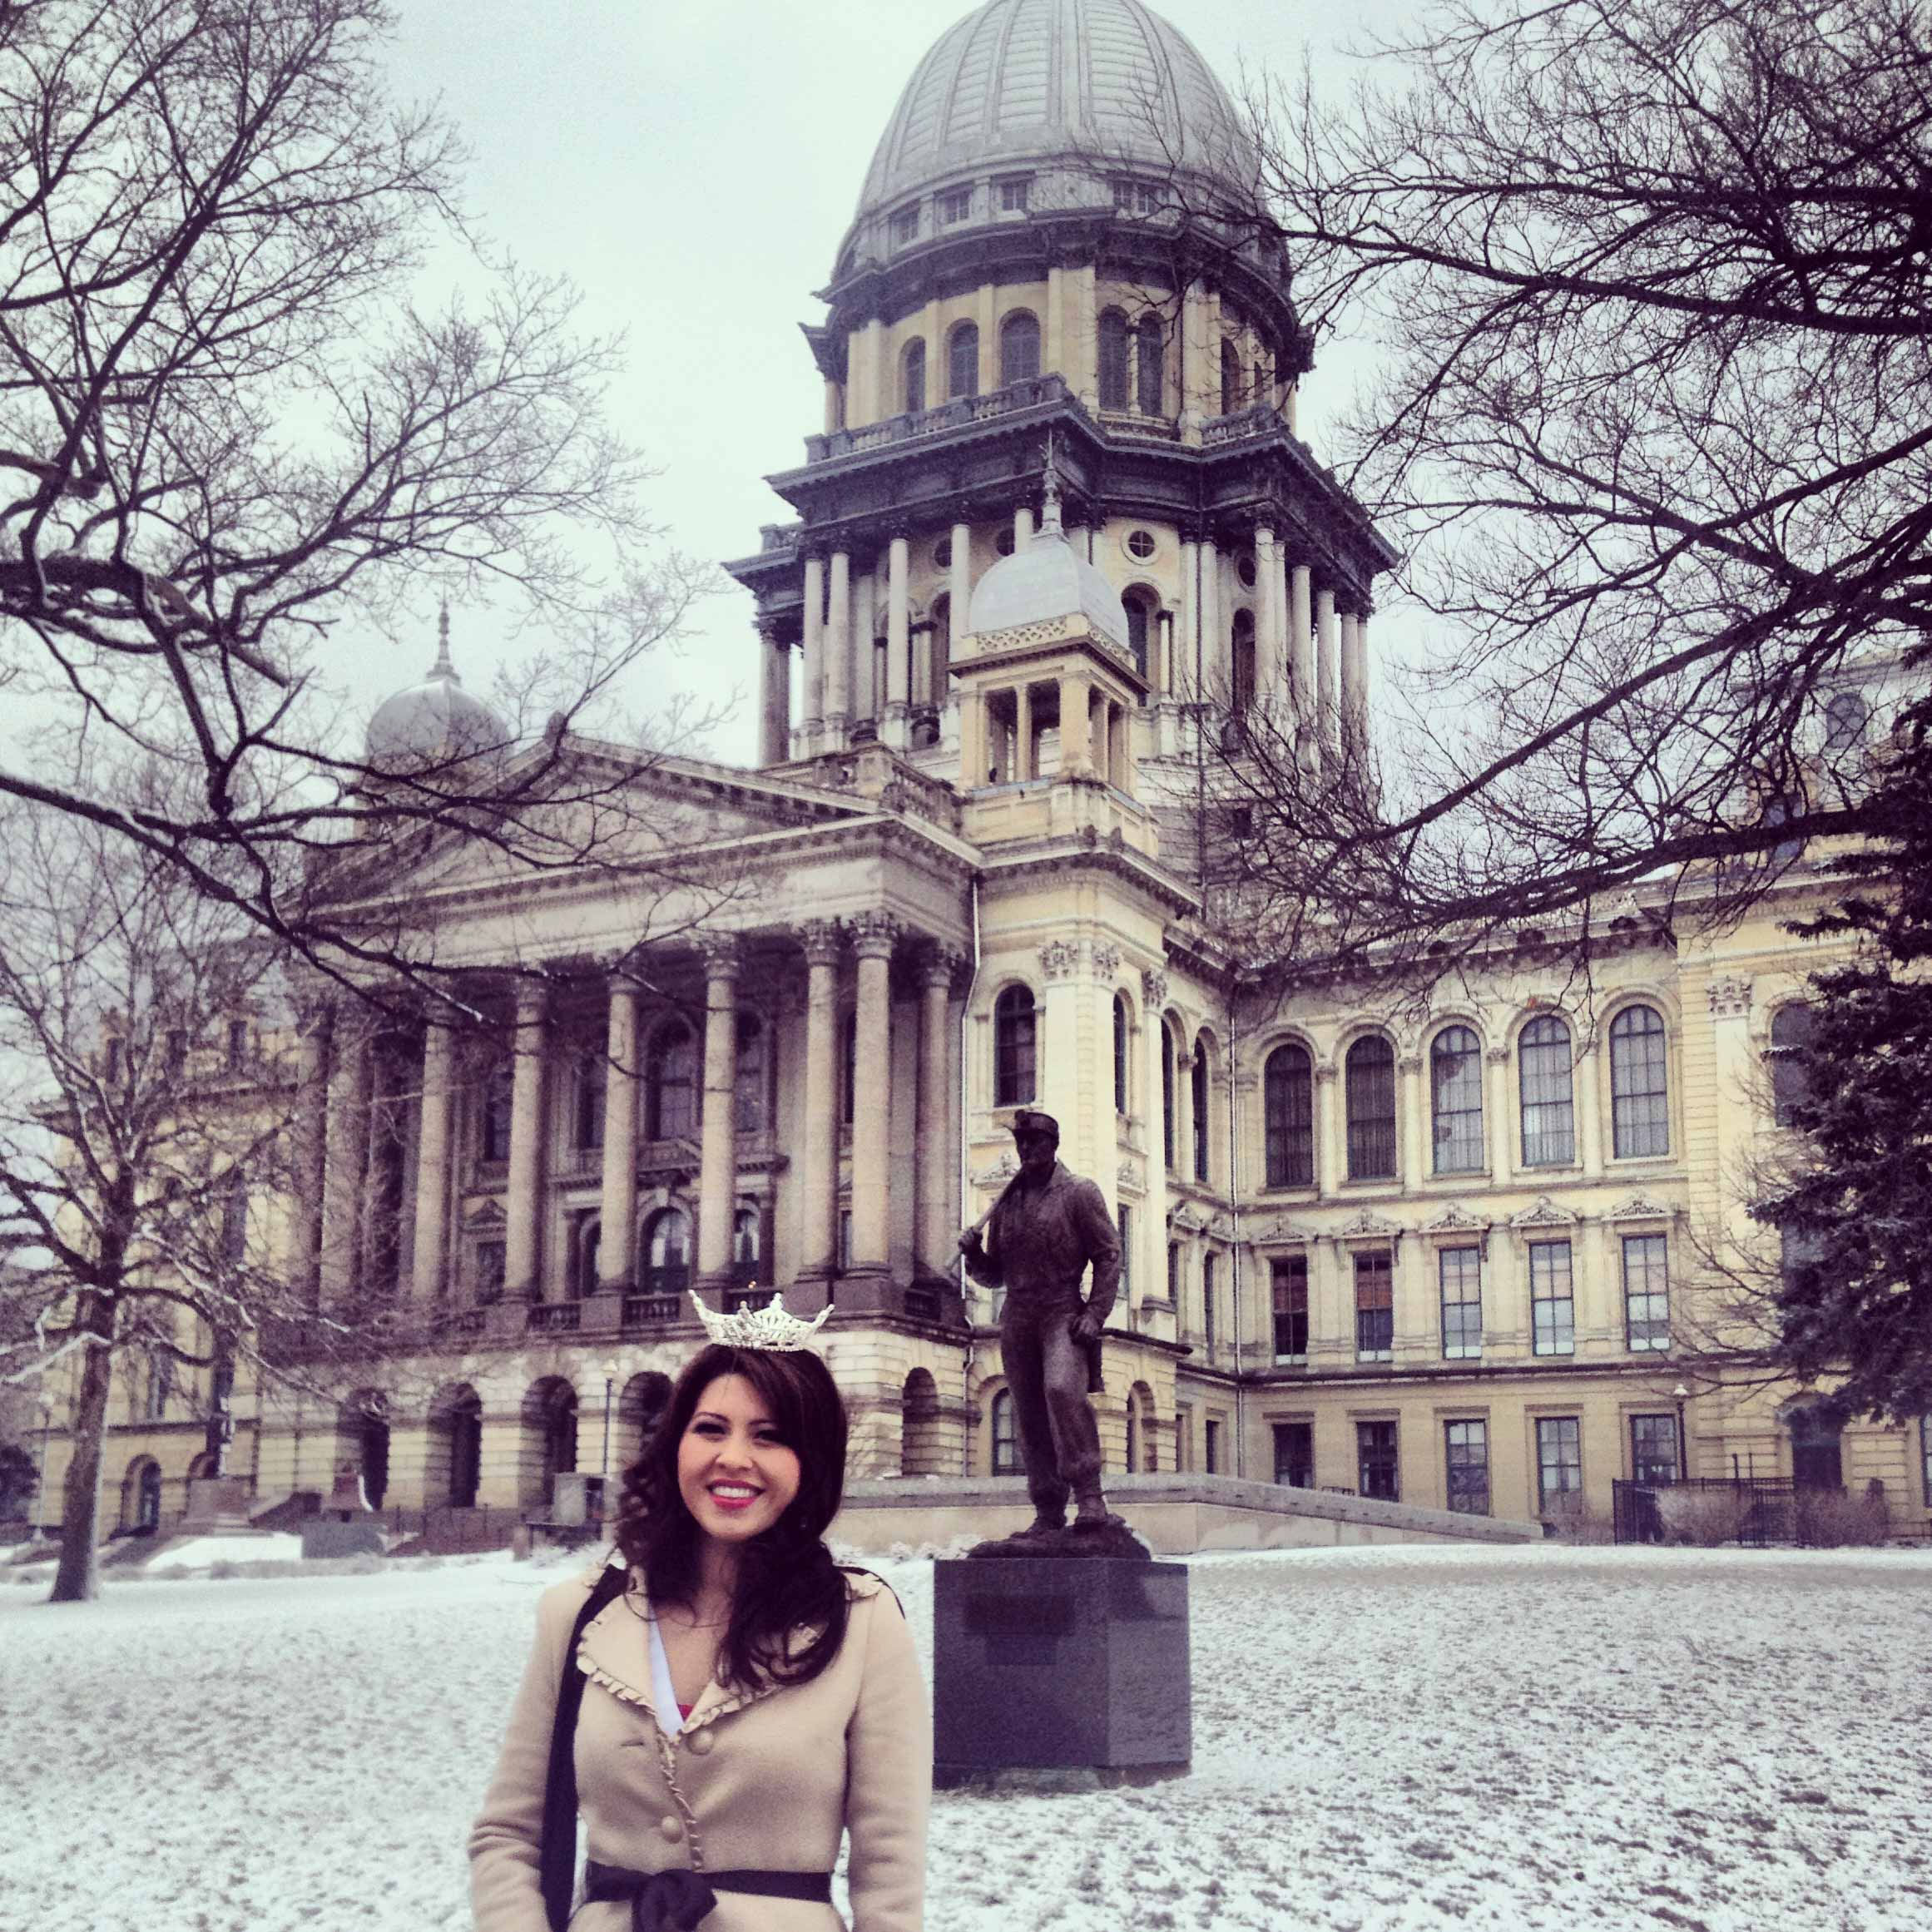 Speaking at the State Capitol Building